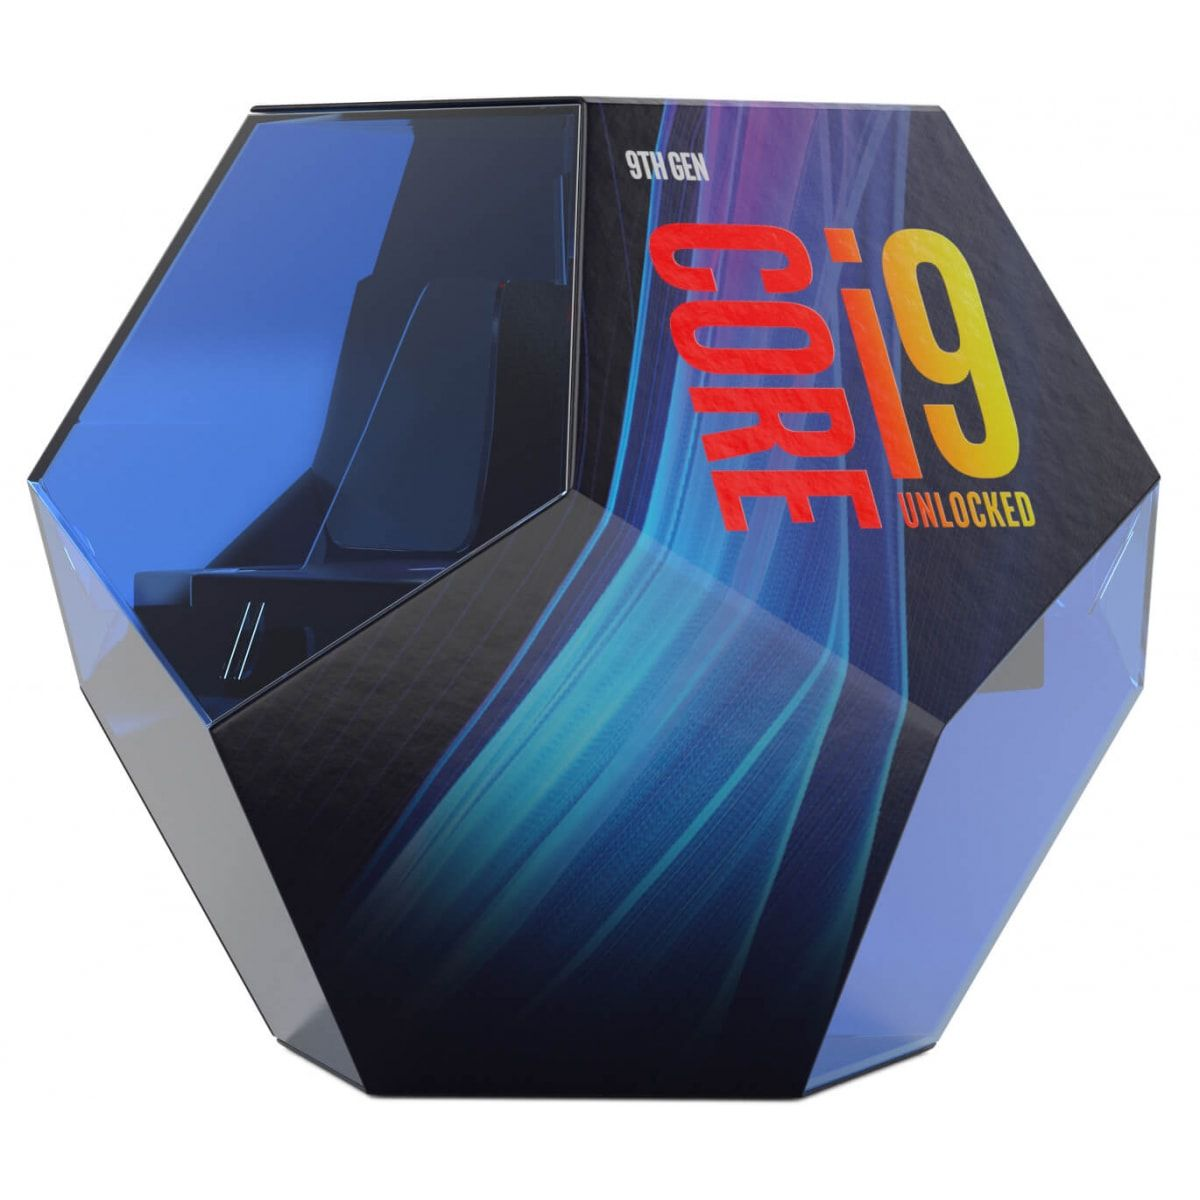 Processador Intel Core i9-9900k Coffee Lake Refresh Cache 16MB, 3.6GHz (5.0GHz Max Turbo)